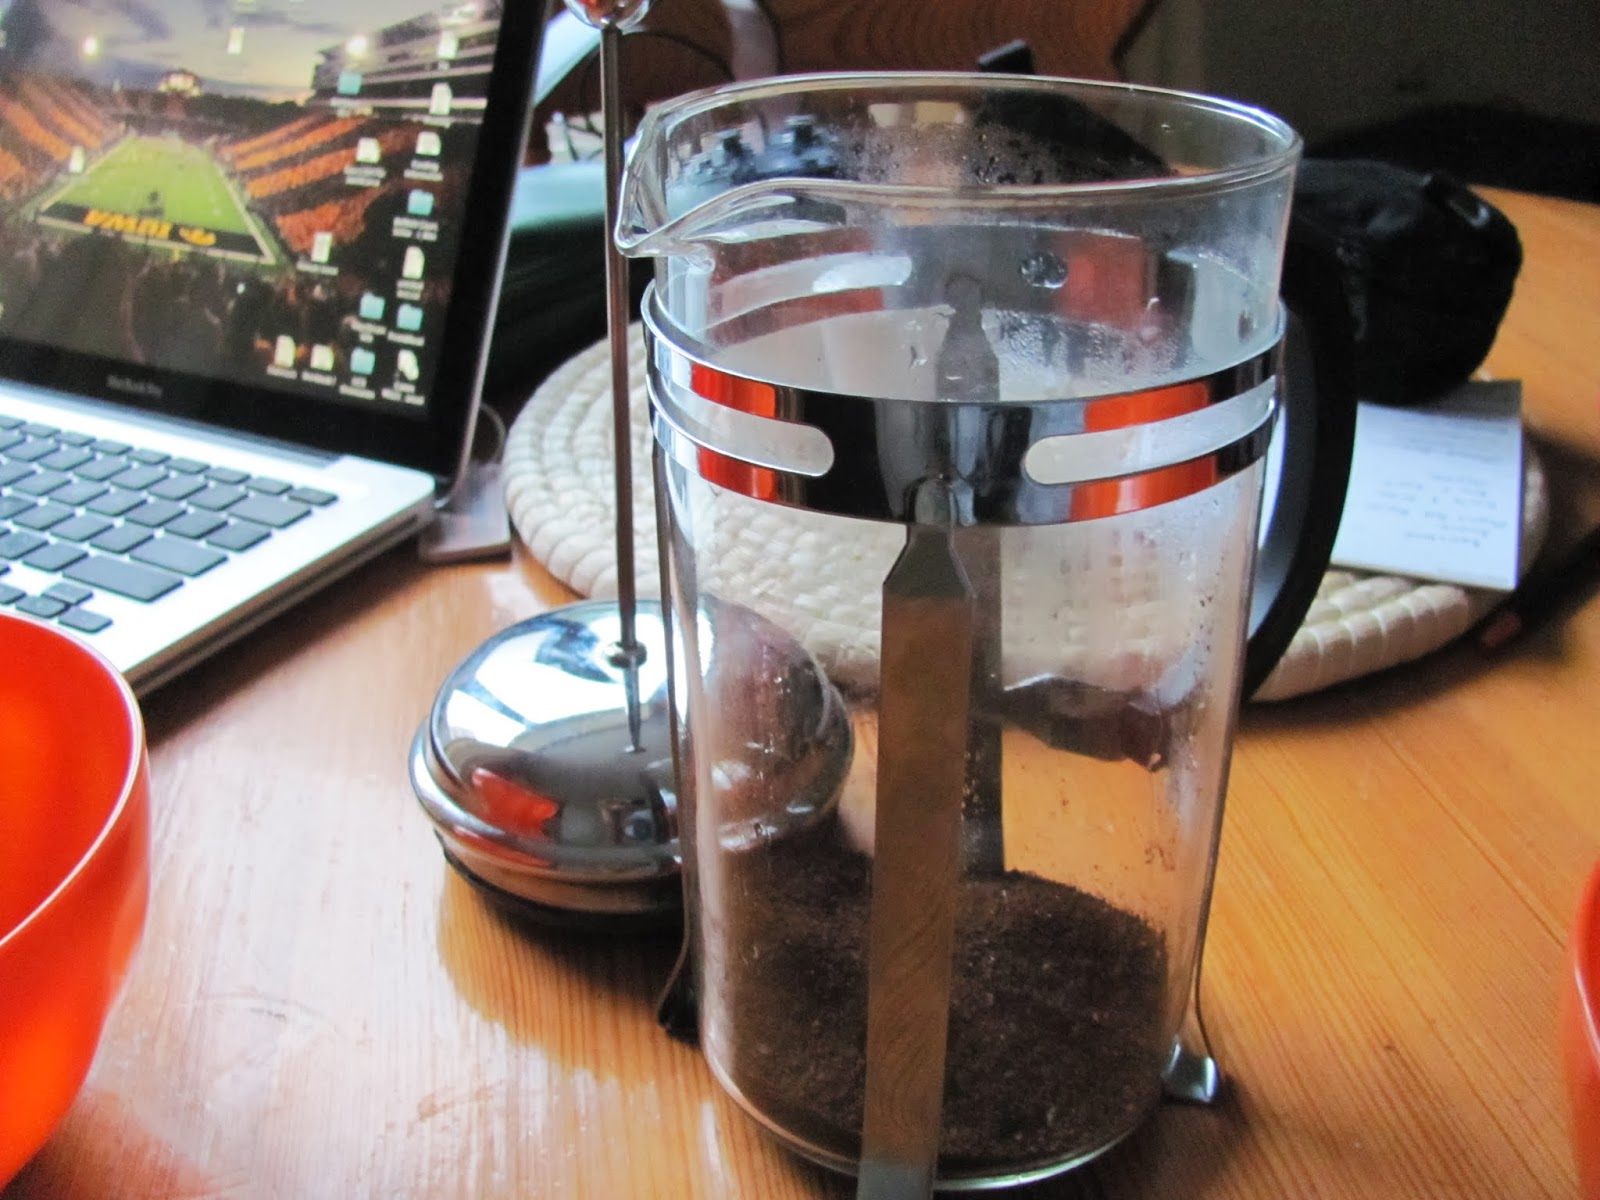 Coffee grounds in a cafetiere French press coffee maker on the table in Dublin, Ireland